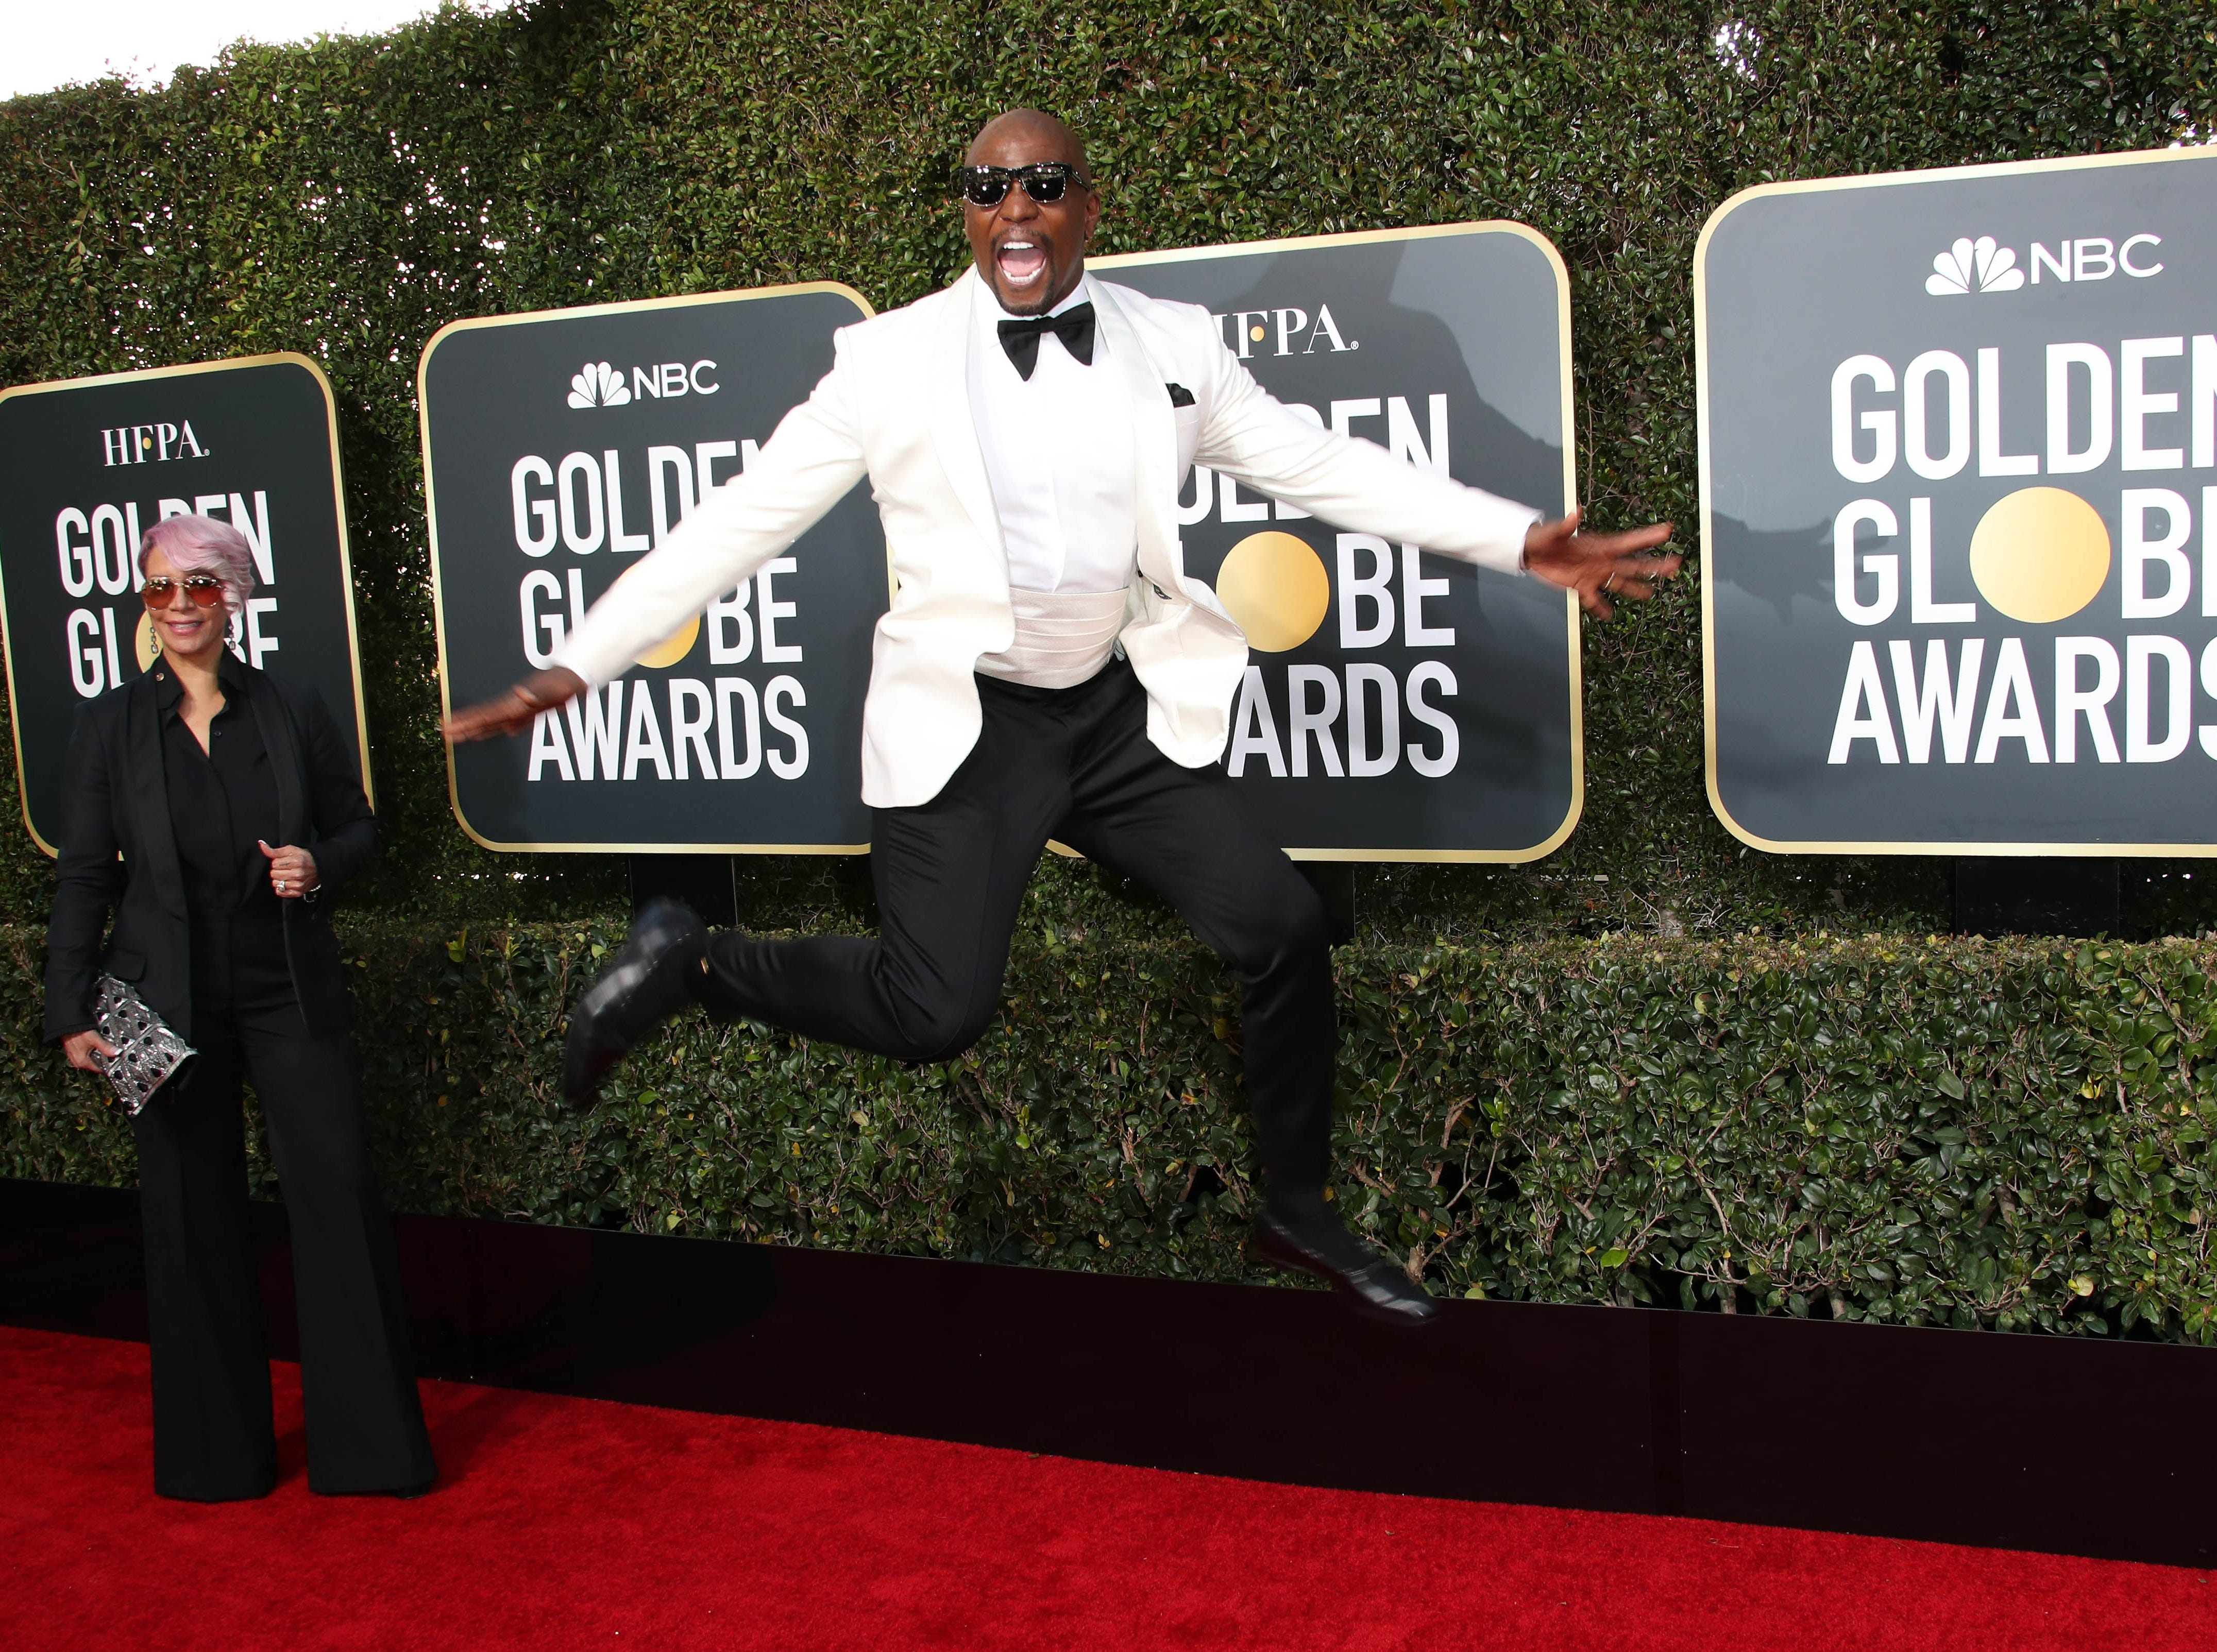 Jan 6, 2019; Beverly Hills, CA, USA; Rebecca King-Crews, left and Terry Crews arrive at the 76th Golden Globe Awards at the Beverly Hilton. Mandatory Credit: Dan MacMedan-USA TODAY NETWORK ORIG FILE ID:  20190106_ajw_usa_741.jpg